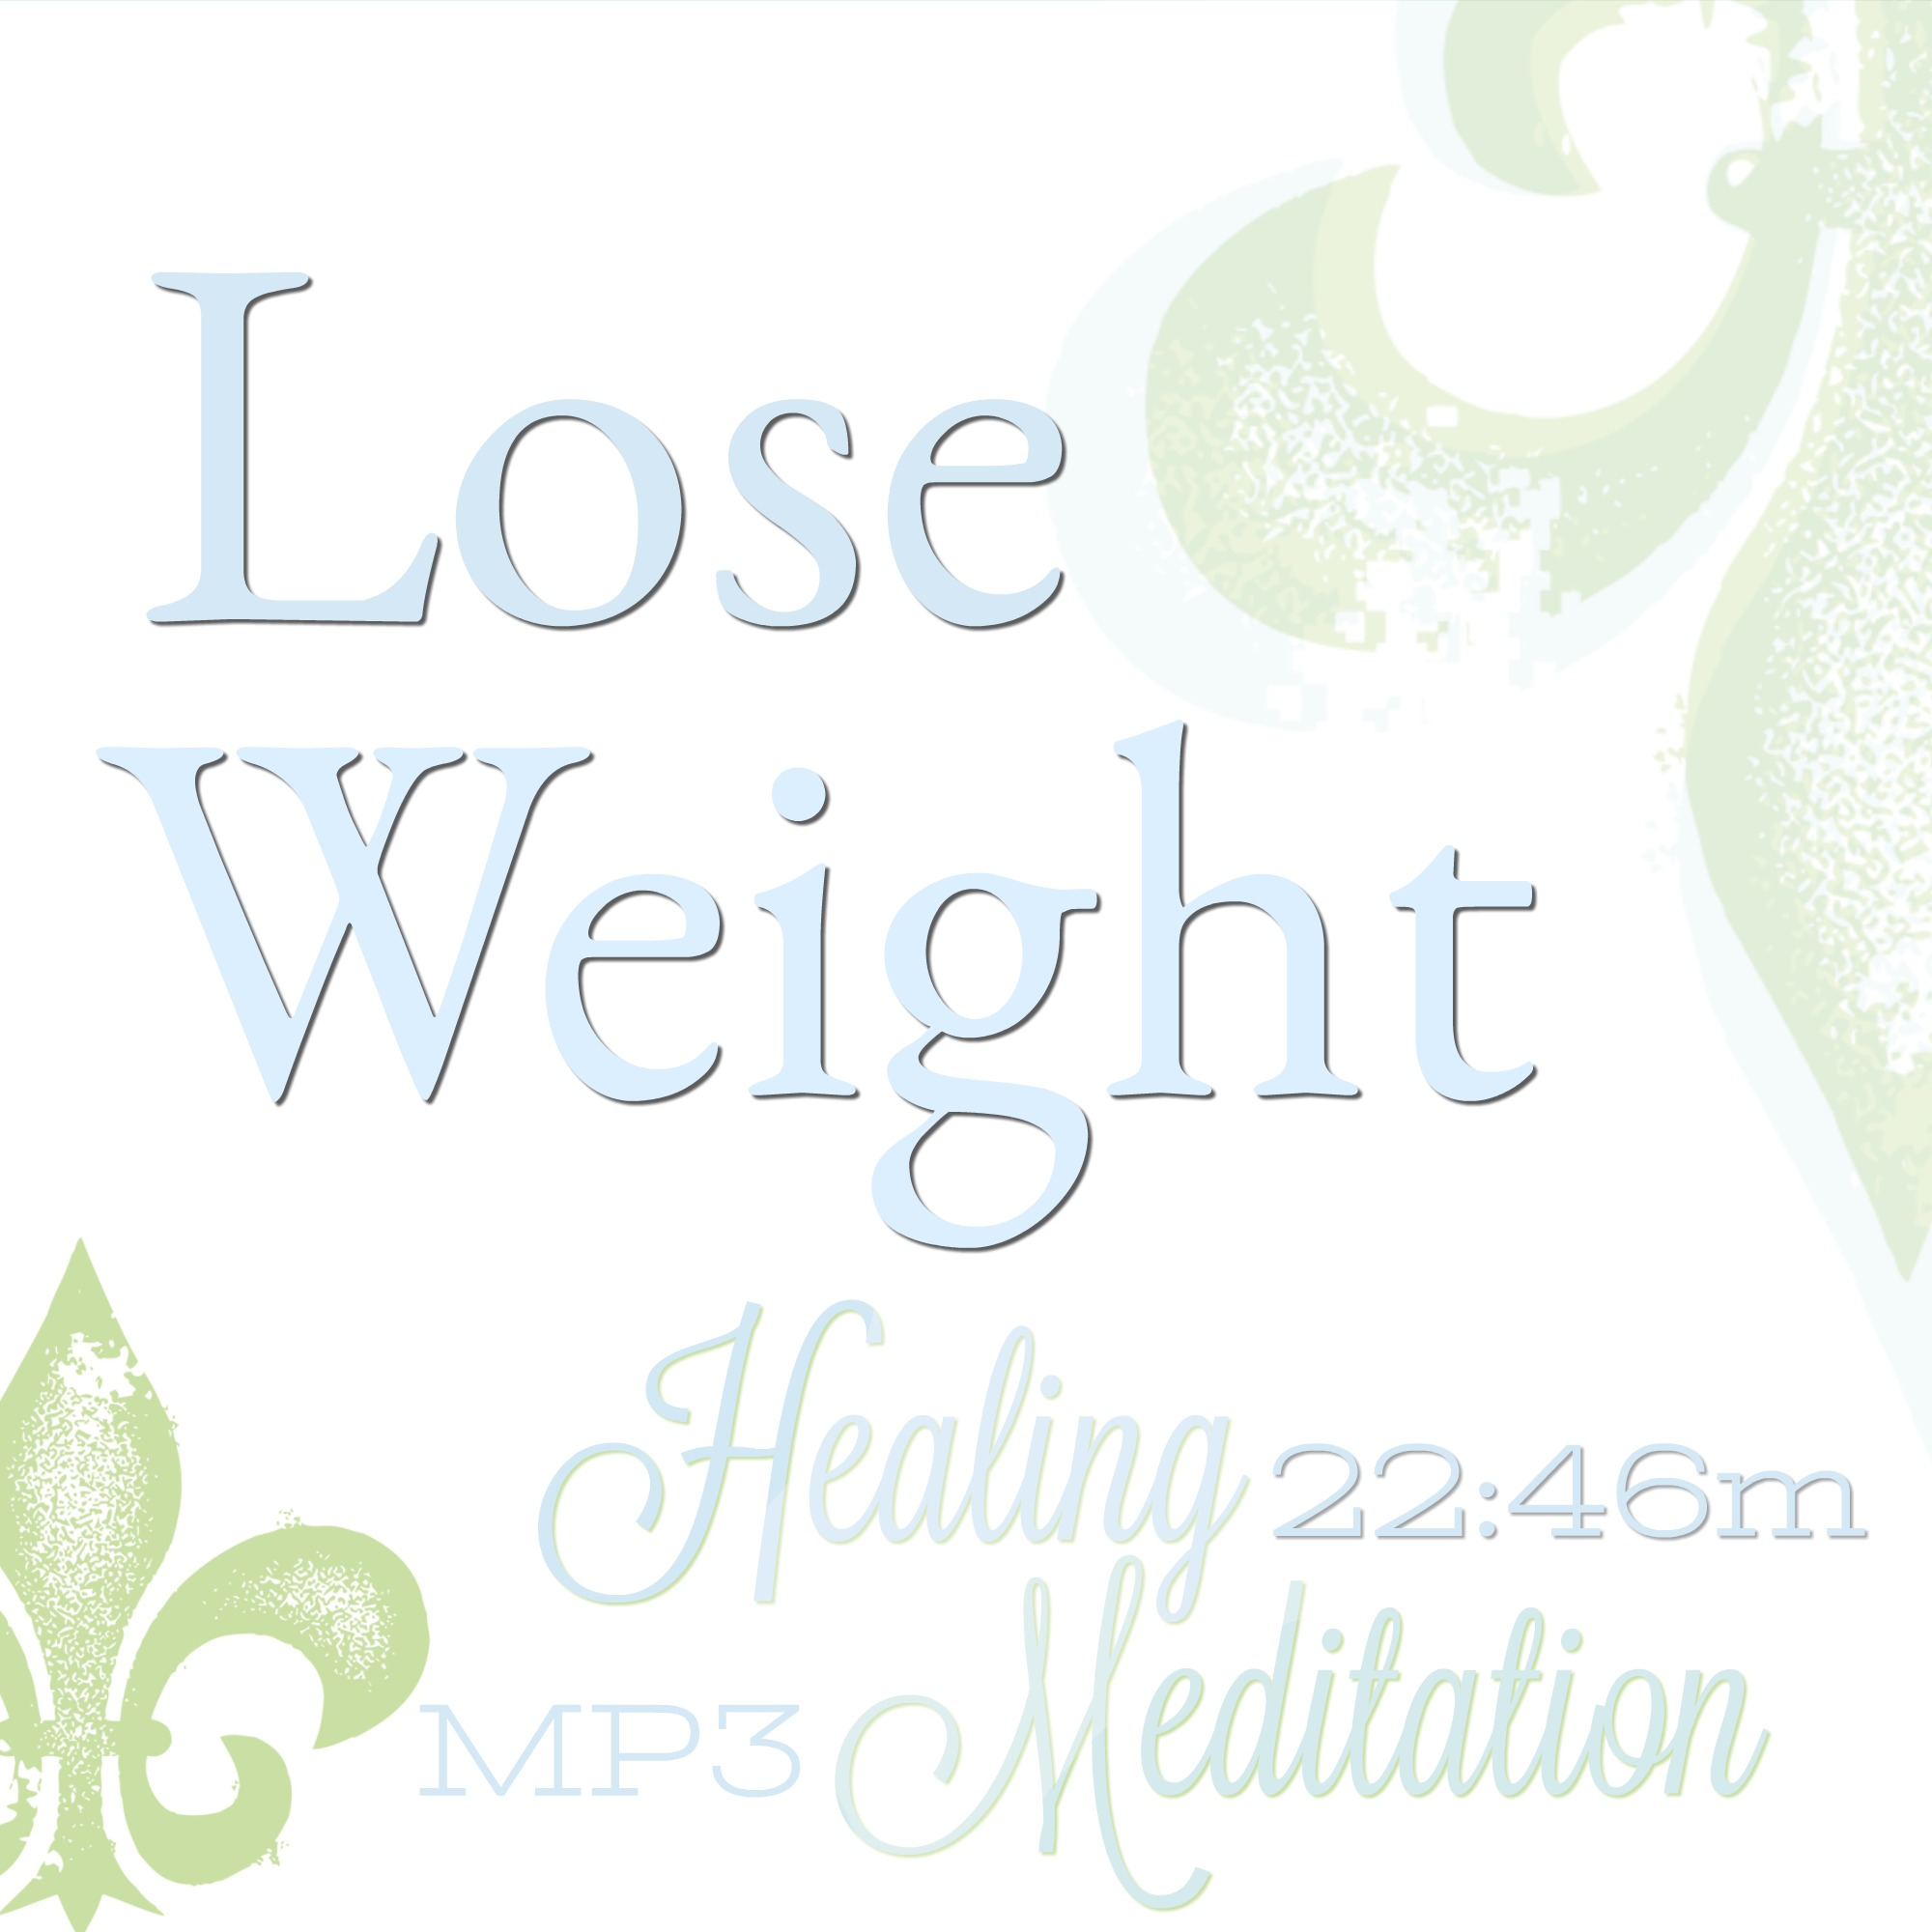 Weight loss meditation, weight loss hypnosis, meditation for weight loss, lose weight with meditation